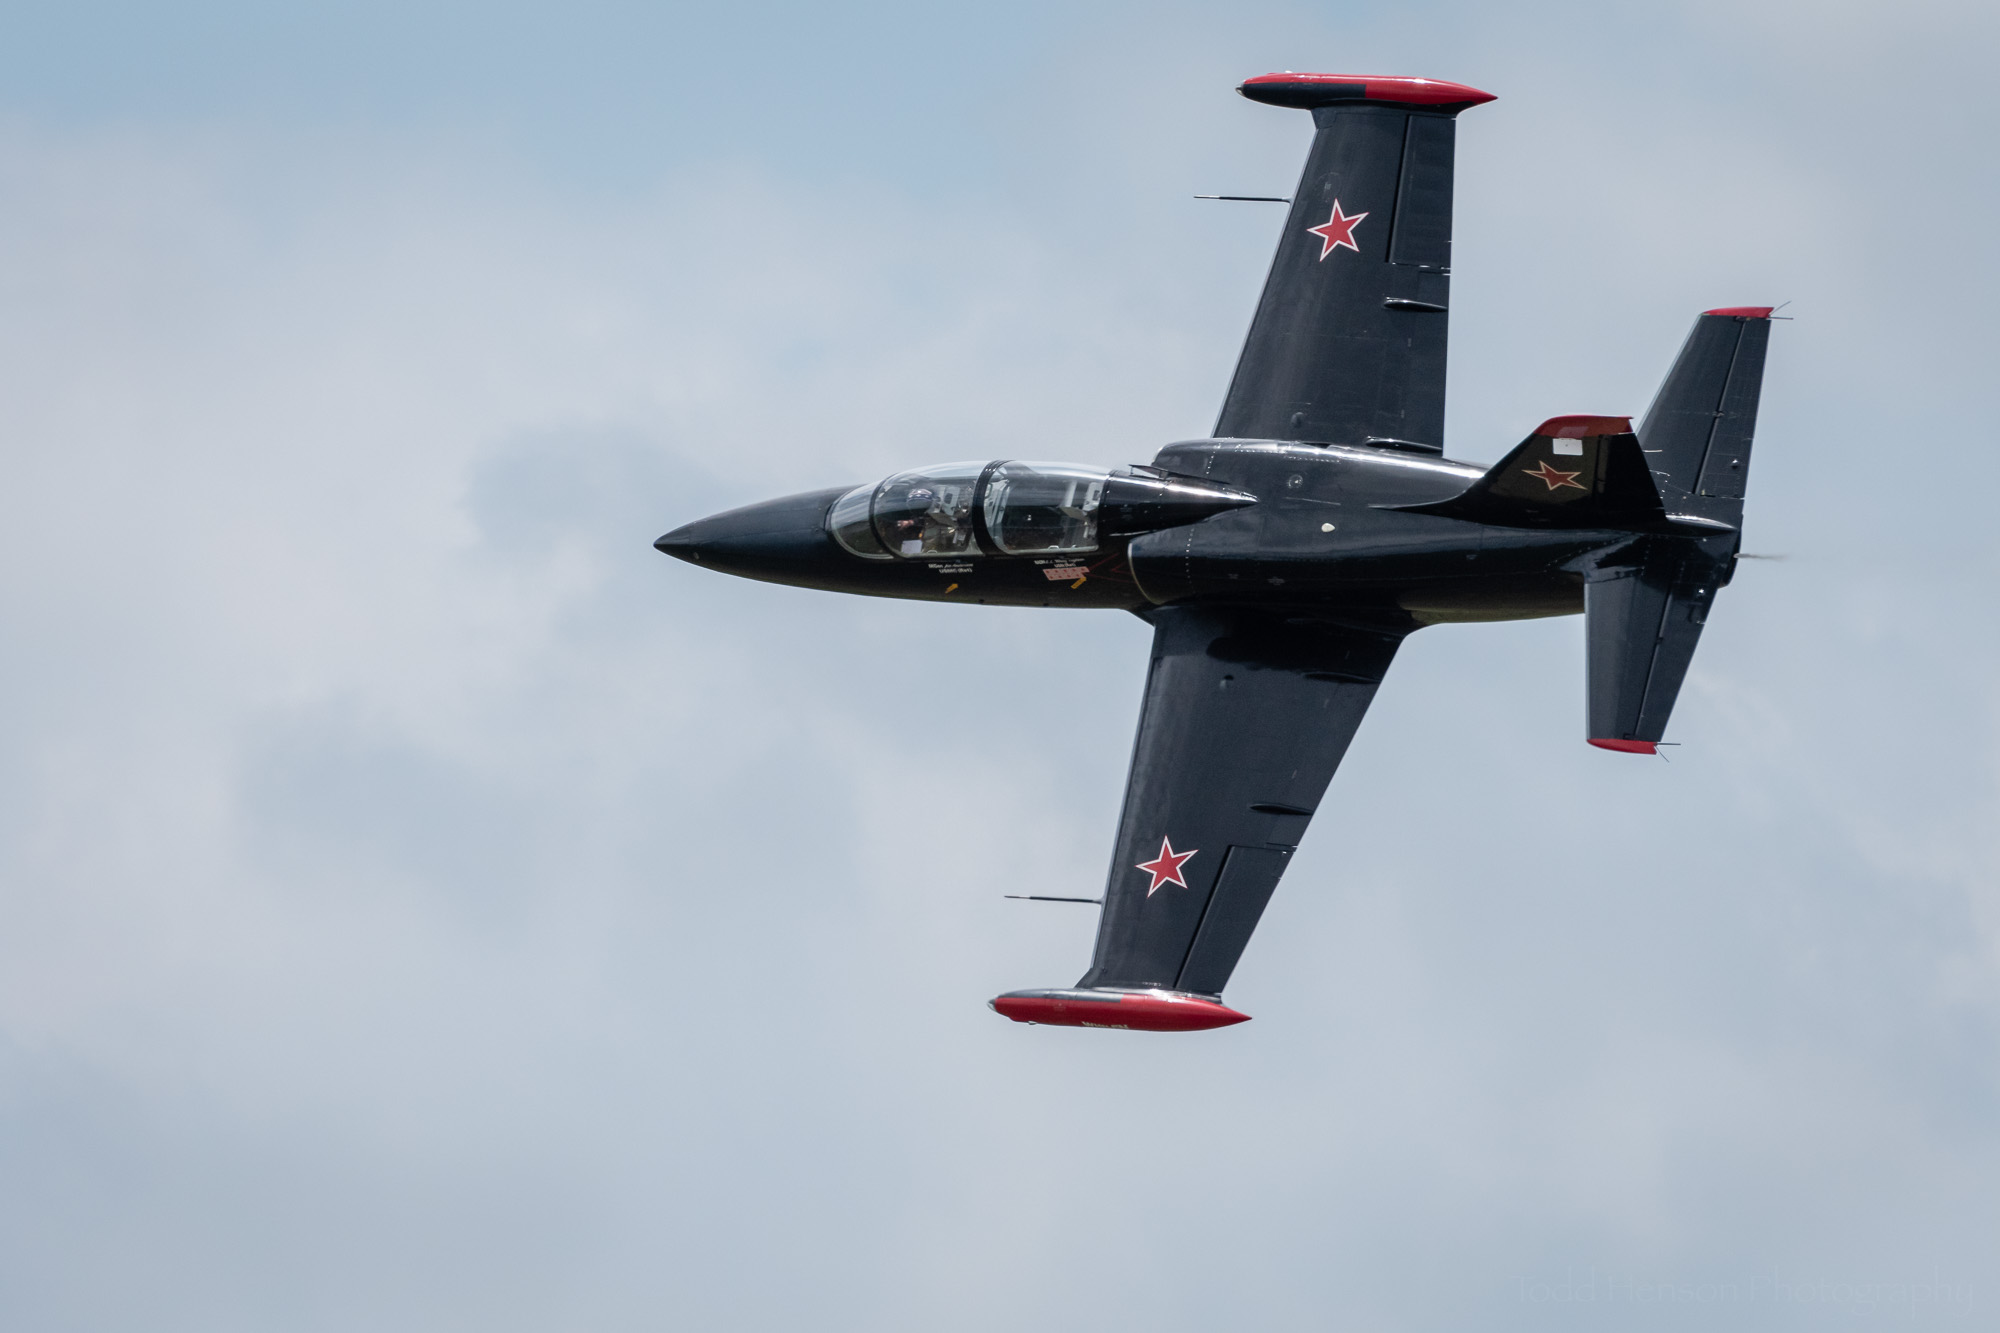 Art Nalls performing a flyby in his L-29 Albatross.